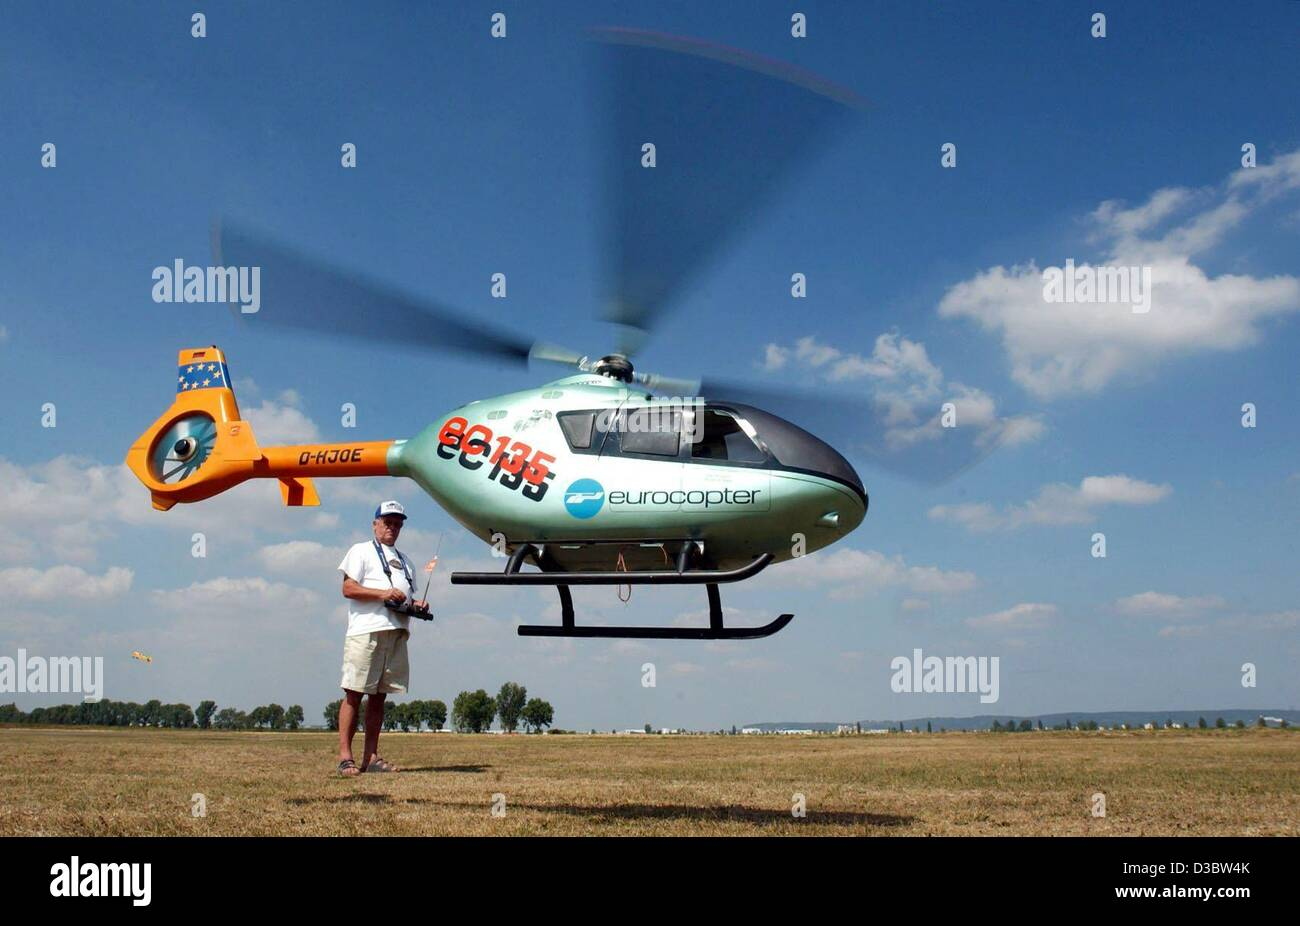 (dpa) - A true-to-scale model of an EC 135 Eurocopter is controlled by a man on the airfield for model aircrafts - Stock Image